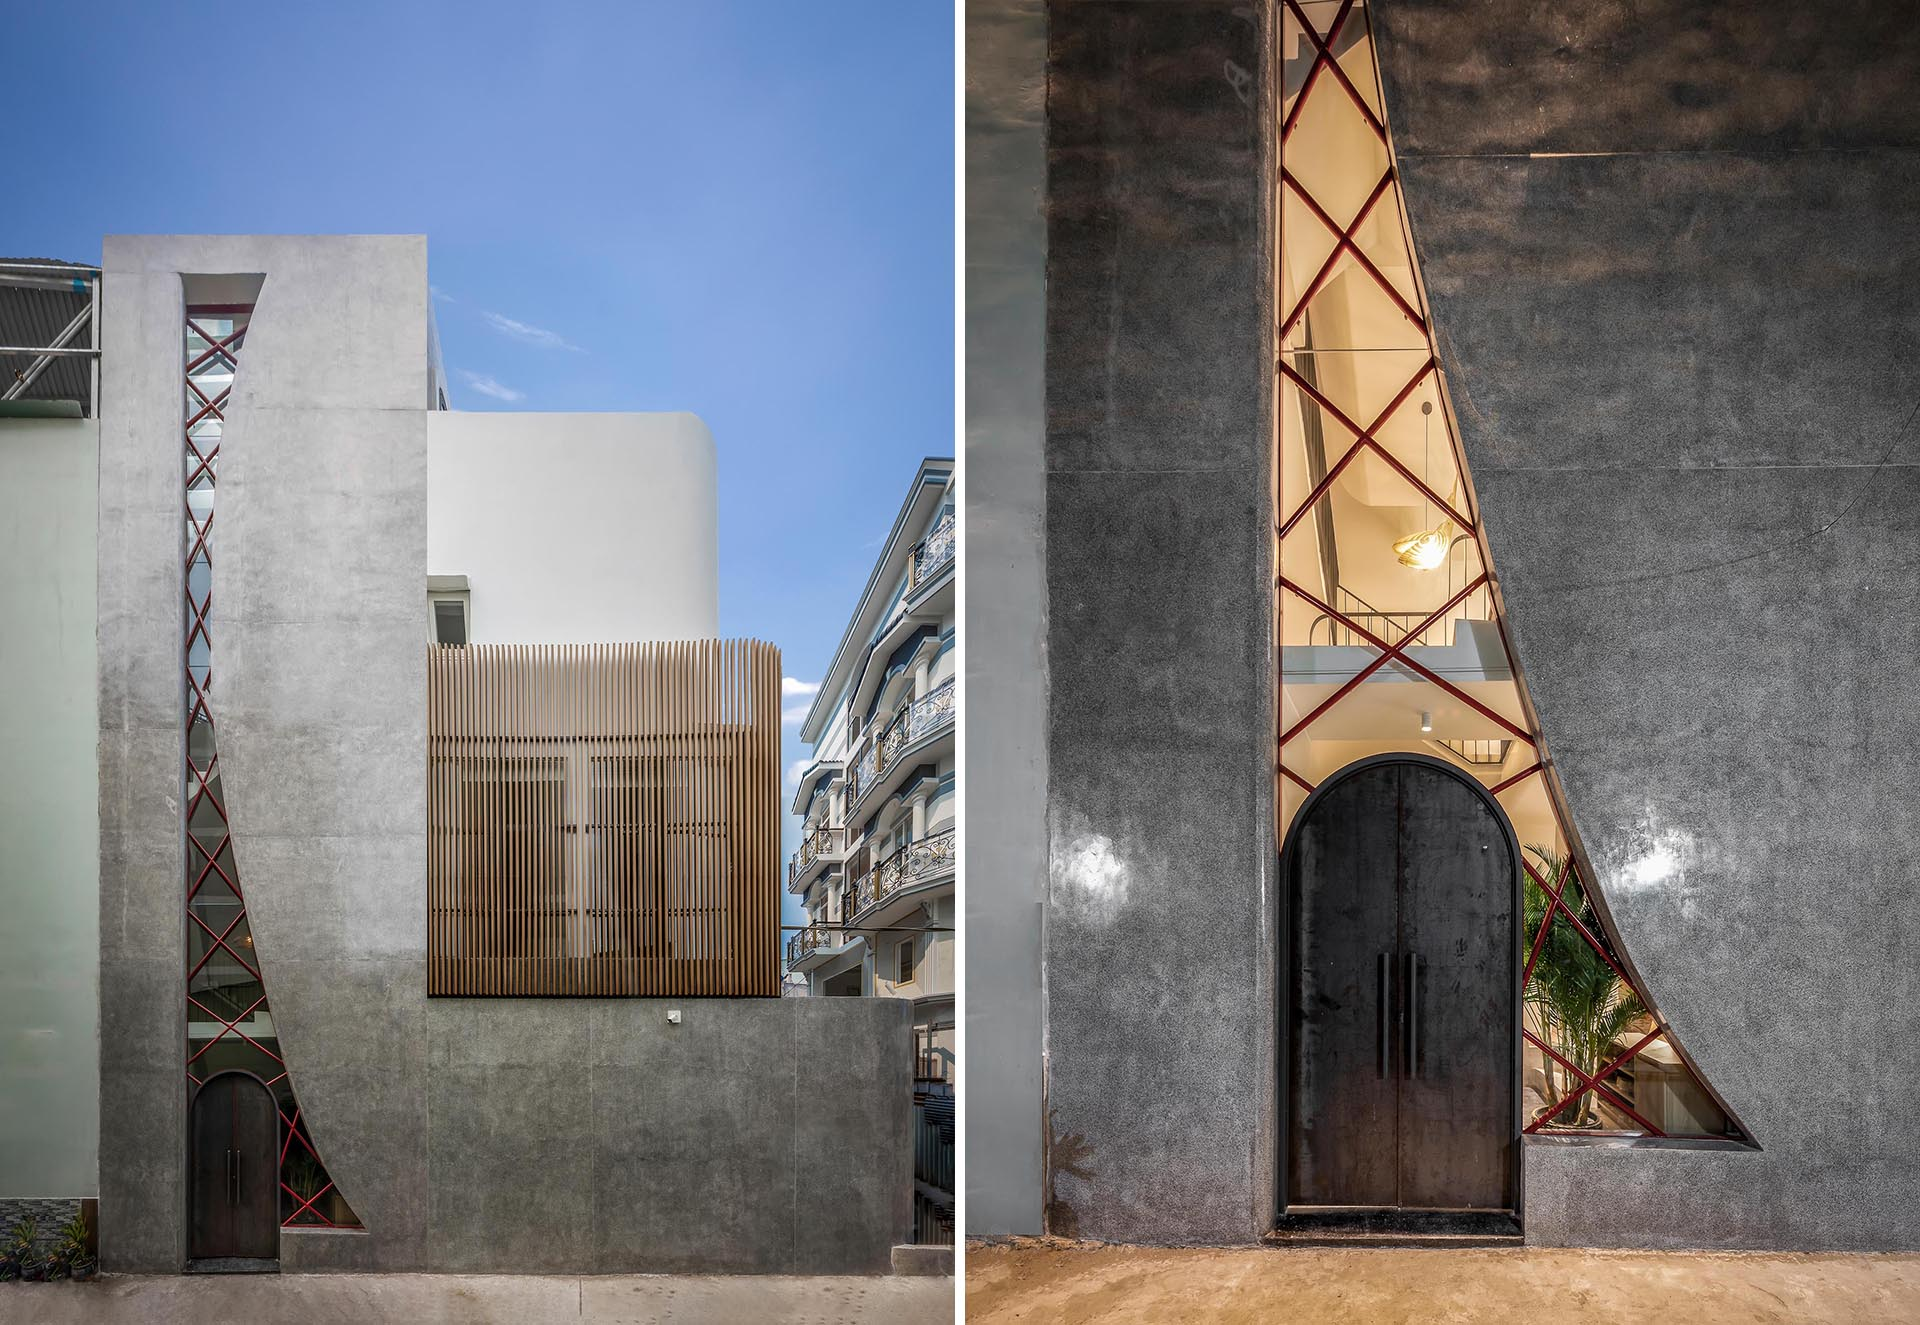 Story Architecture has designed a modern house in Ho Chi Minh City, Vietnam, that includes large window with an irregular shape.